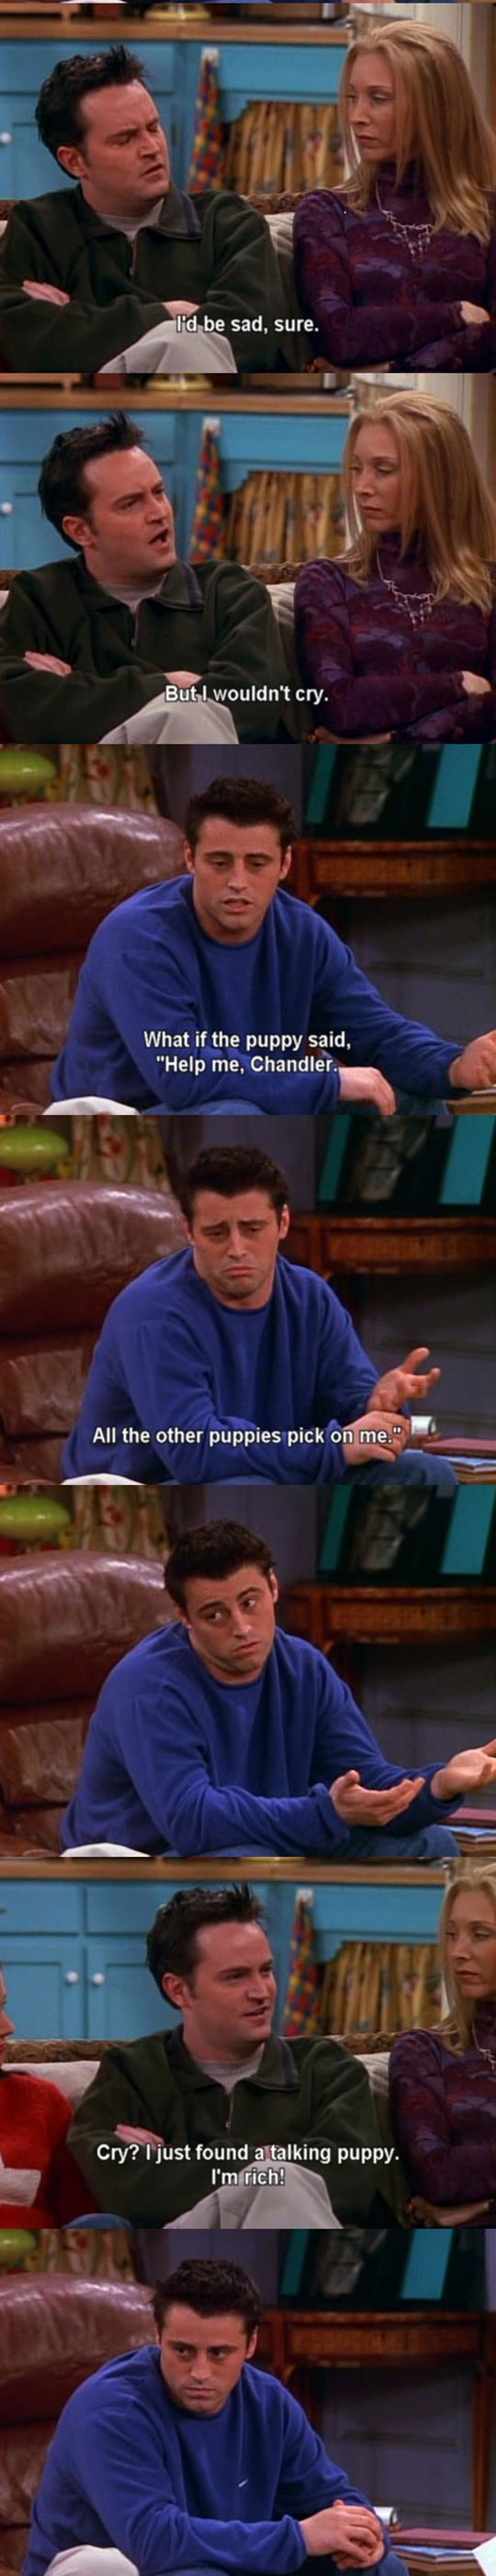 funny-Friends-Chandler-sad-crying